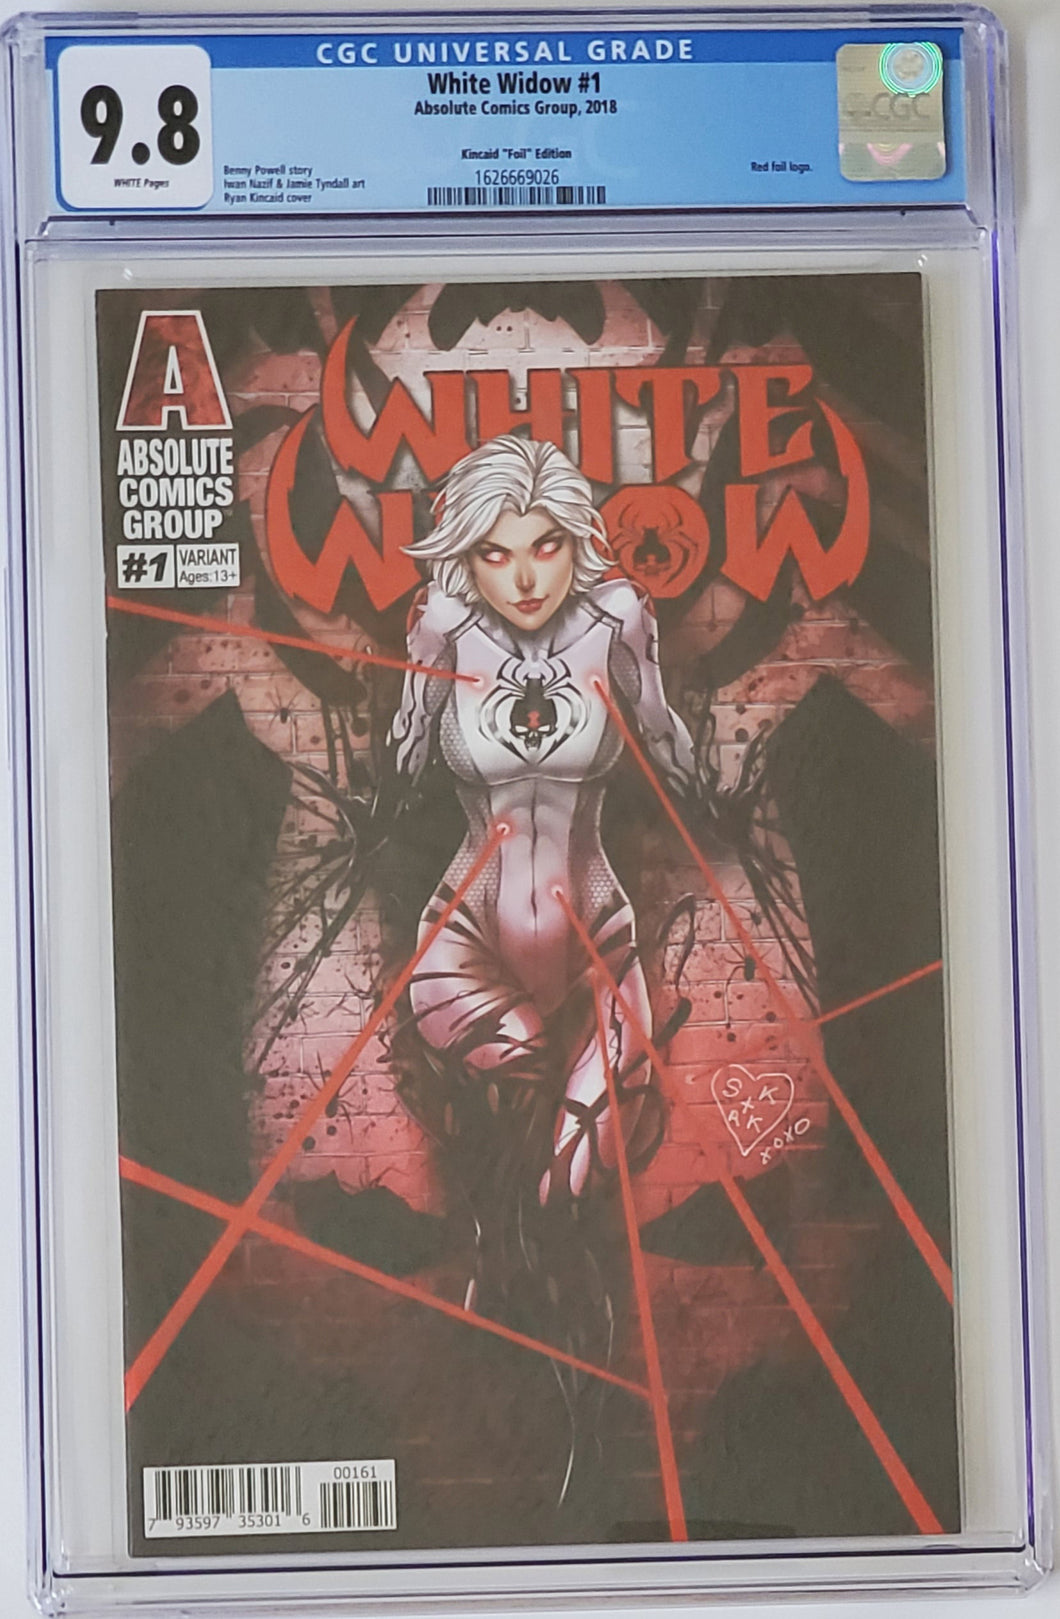 White Widow #1G 9.8 CGC - HUNTED - Blue Label